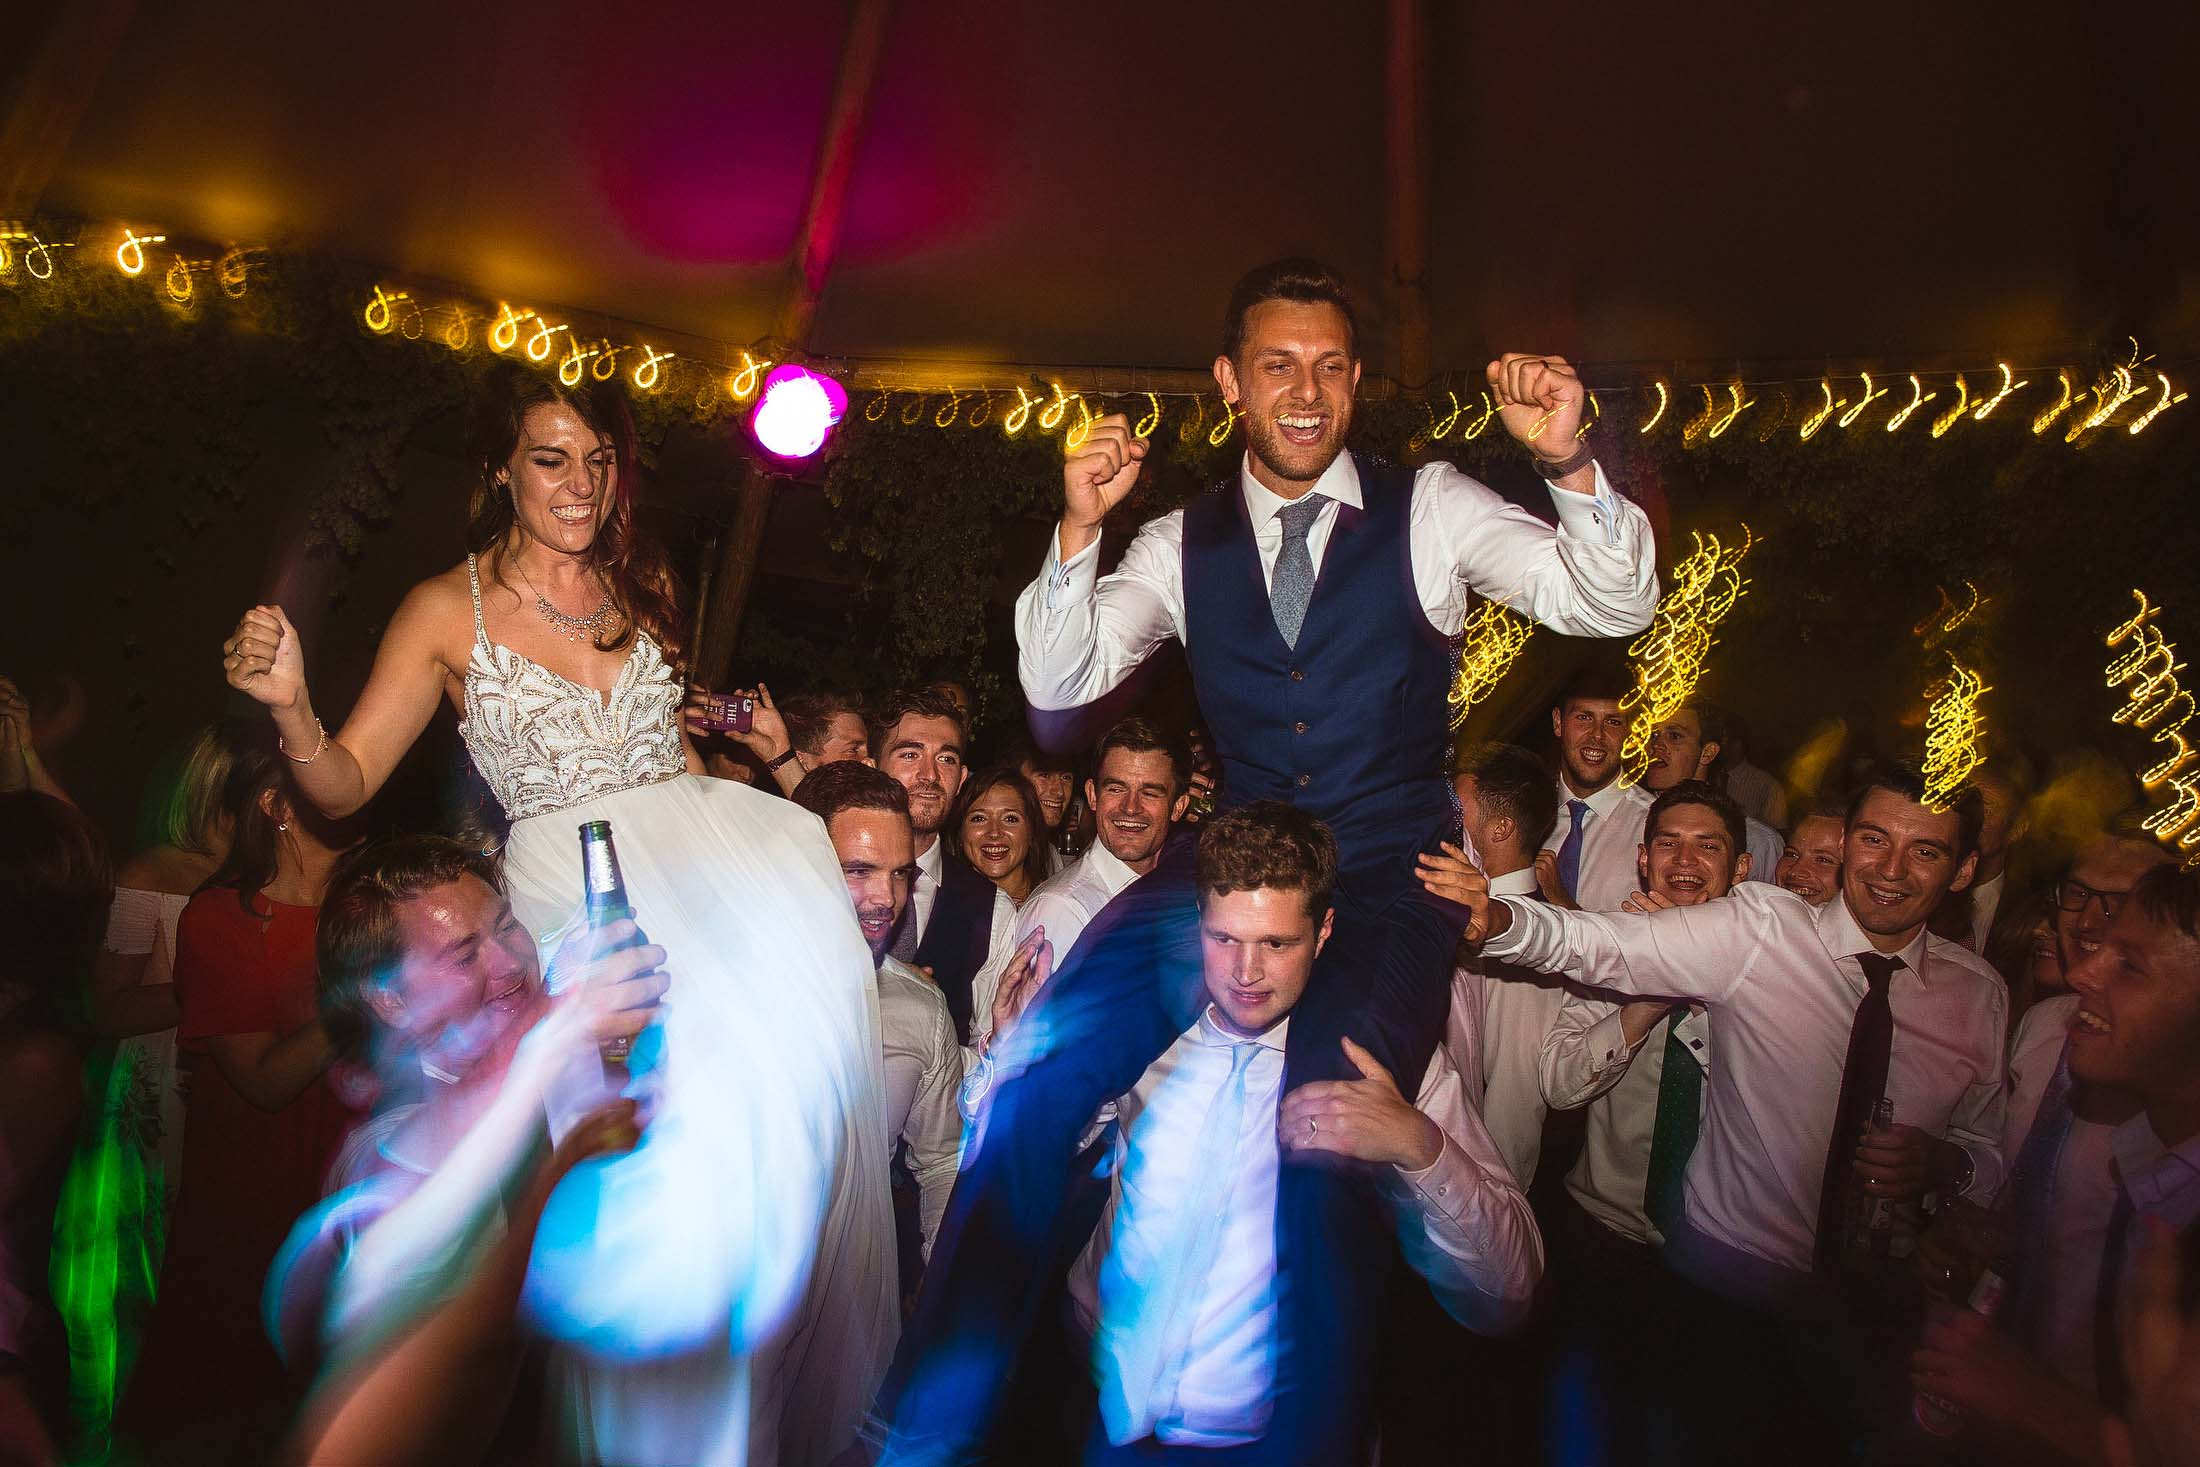 party wedding photos